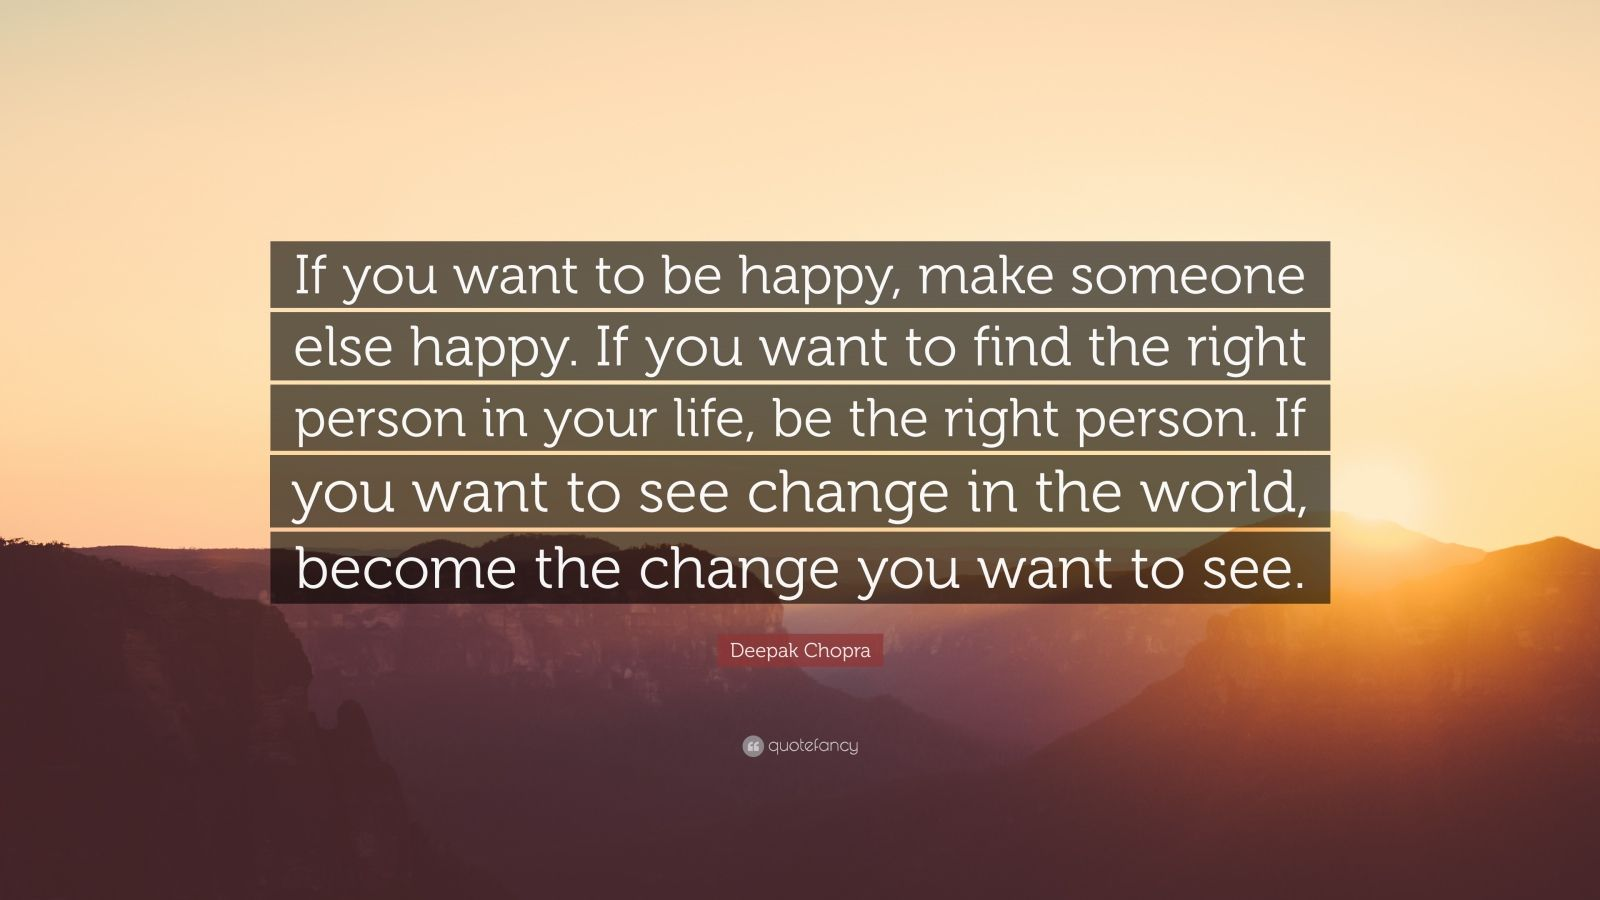 "Deepak Chopra Quote: ""If you want to be happy, make someone else happy. If you want to find the right person in your life, be the right person. If you want to see change in the world, become the change you want to see."""